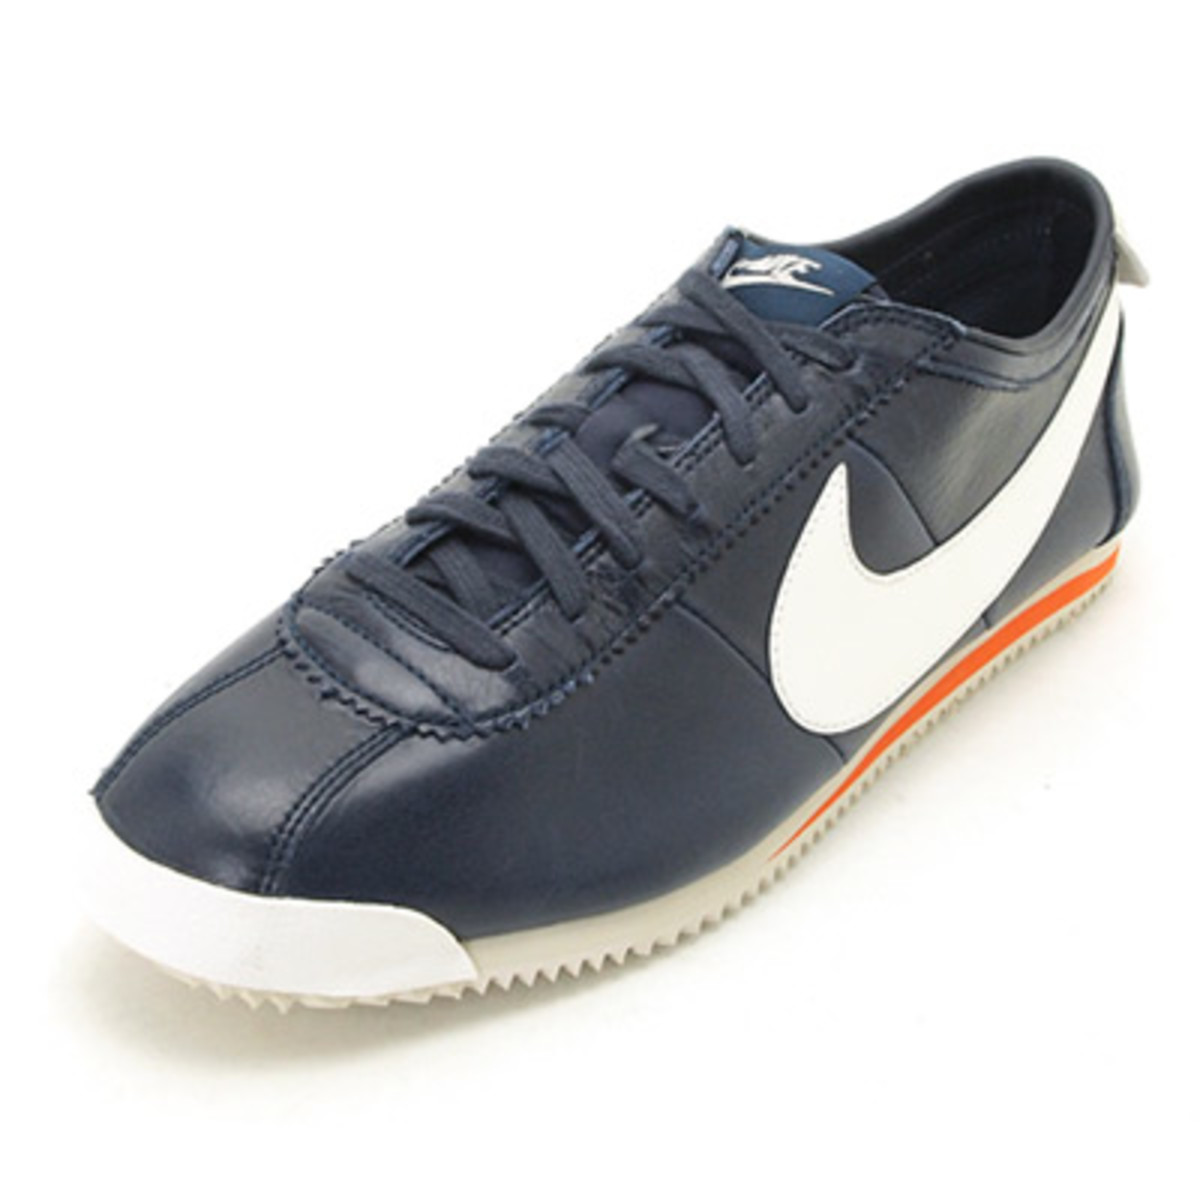 nike-cortez-classic-og-leather-01